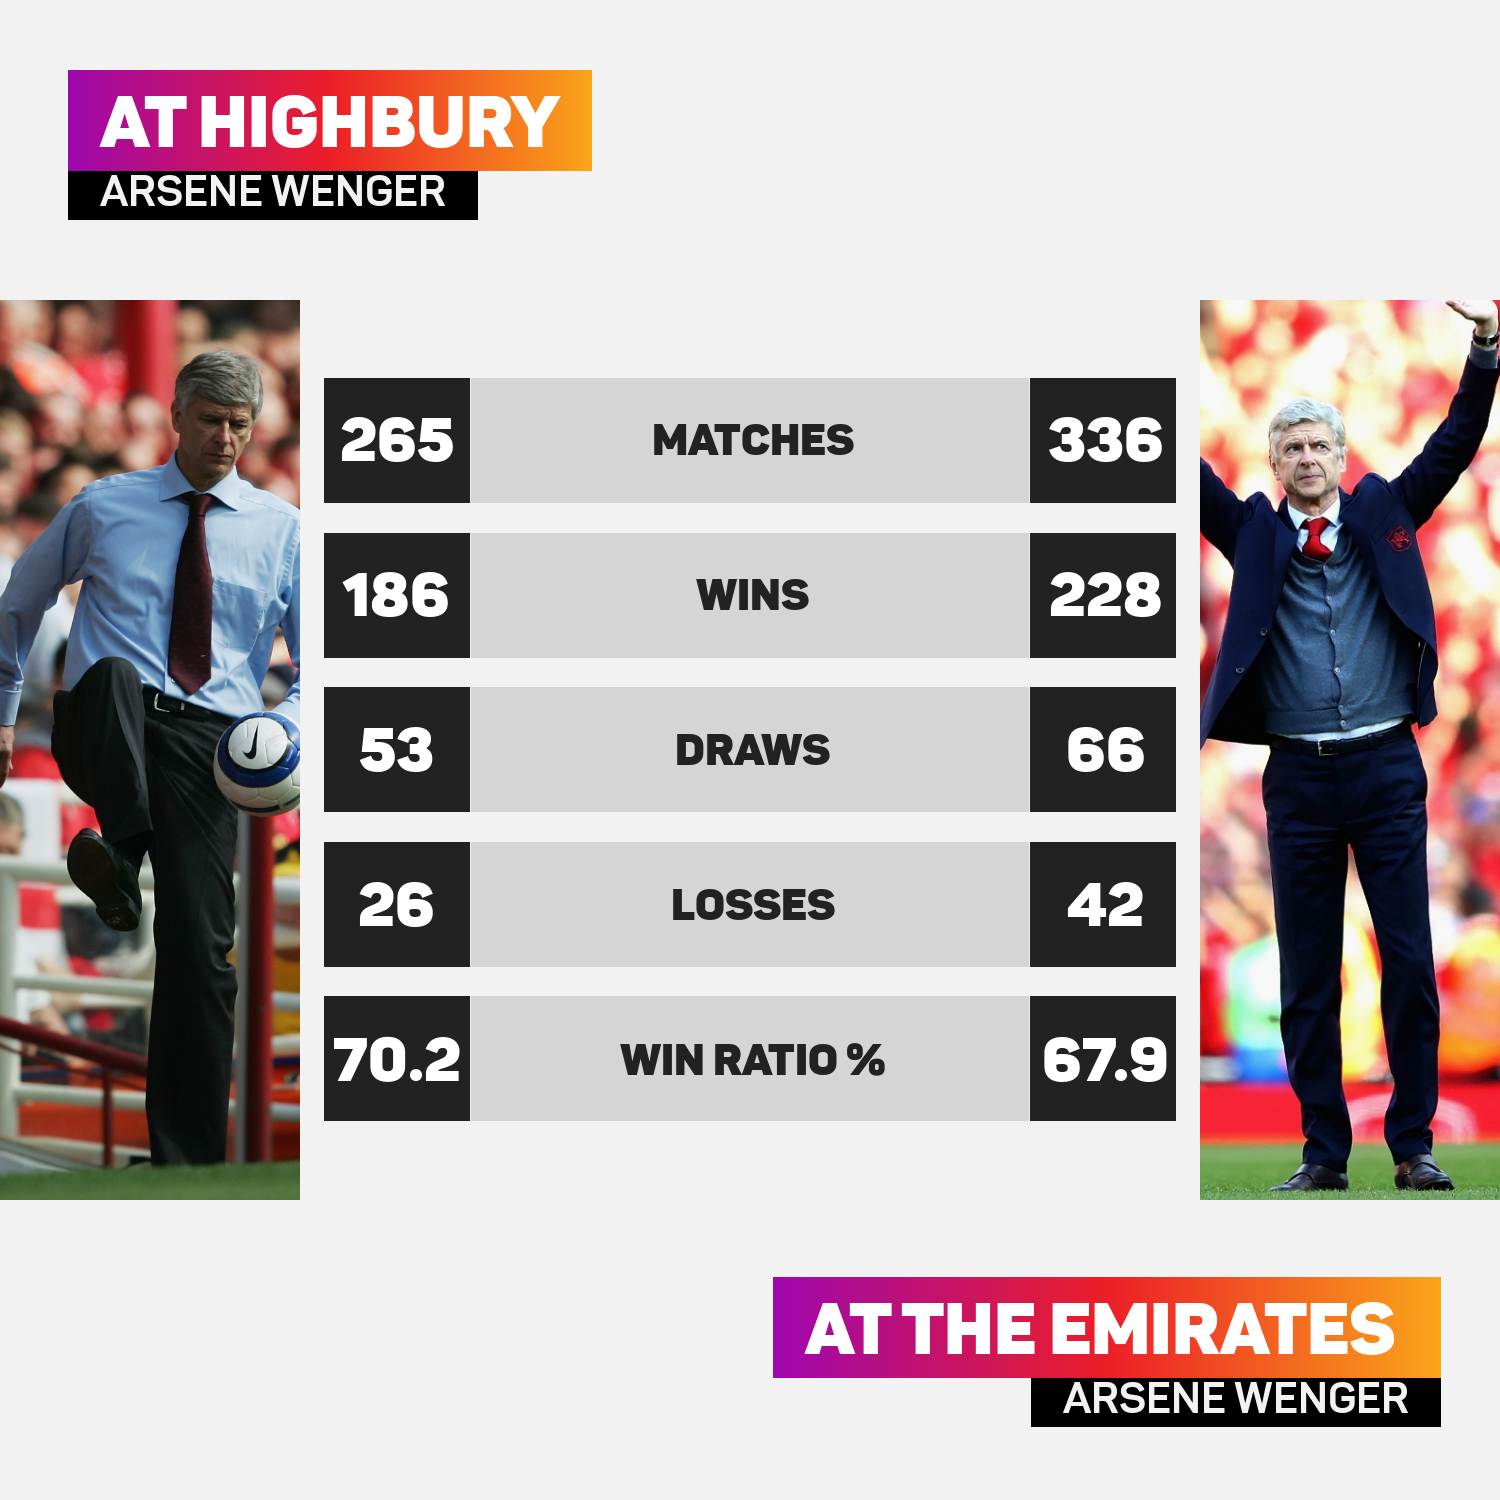 Arsene Wenger presided over more games at the Emirates than at Highbury